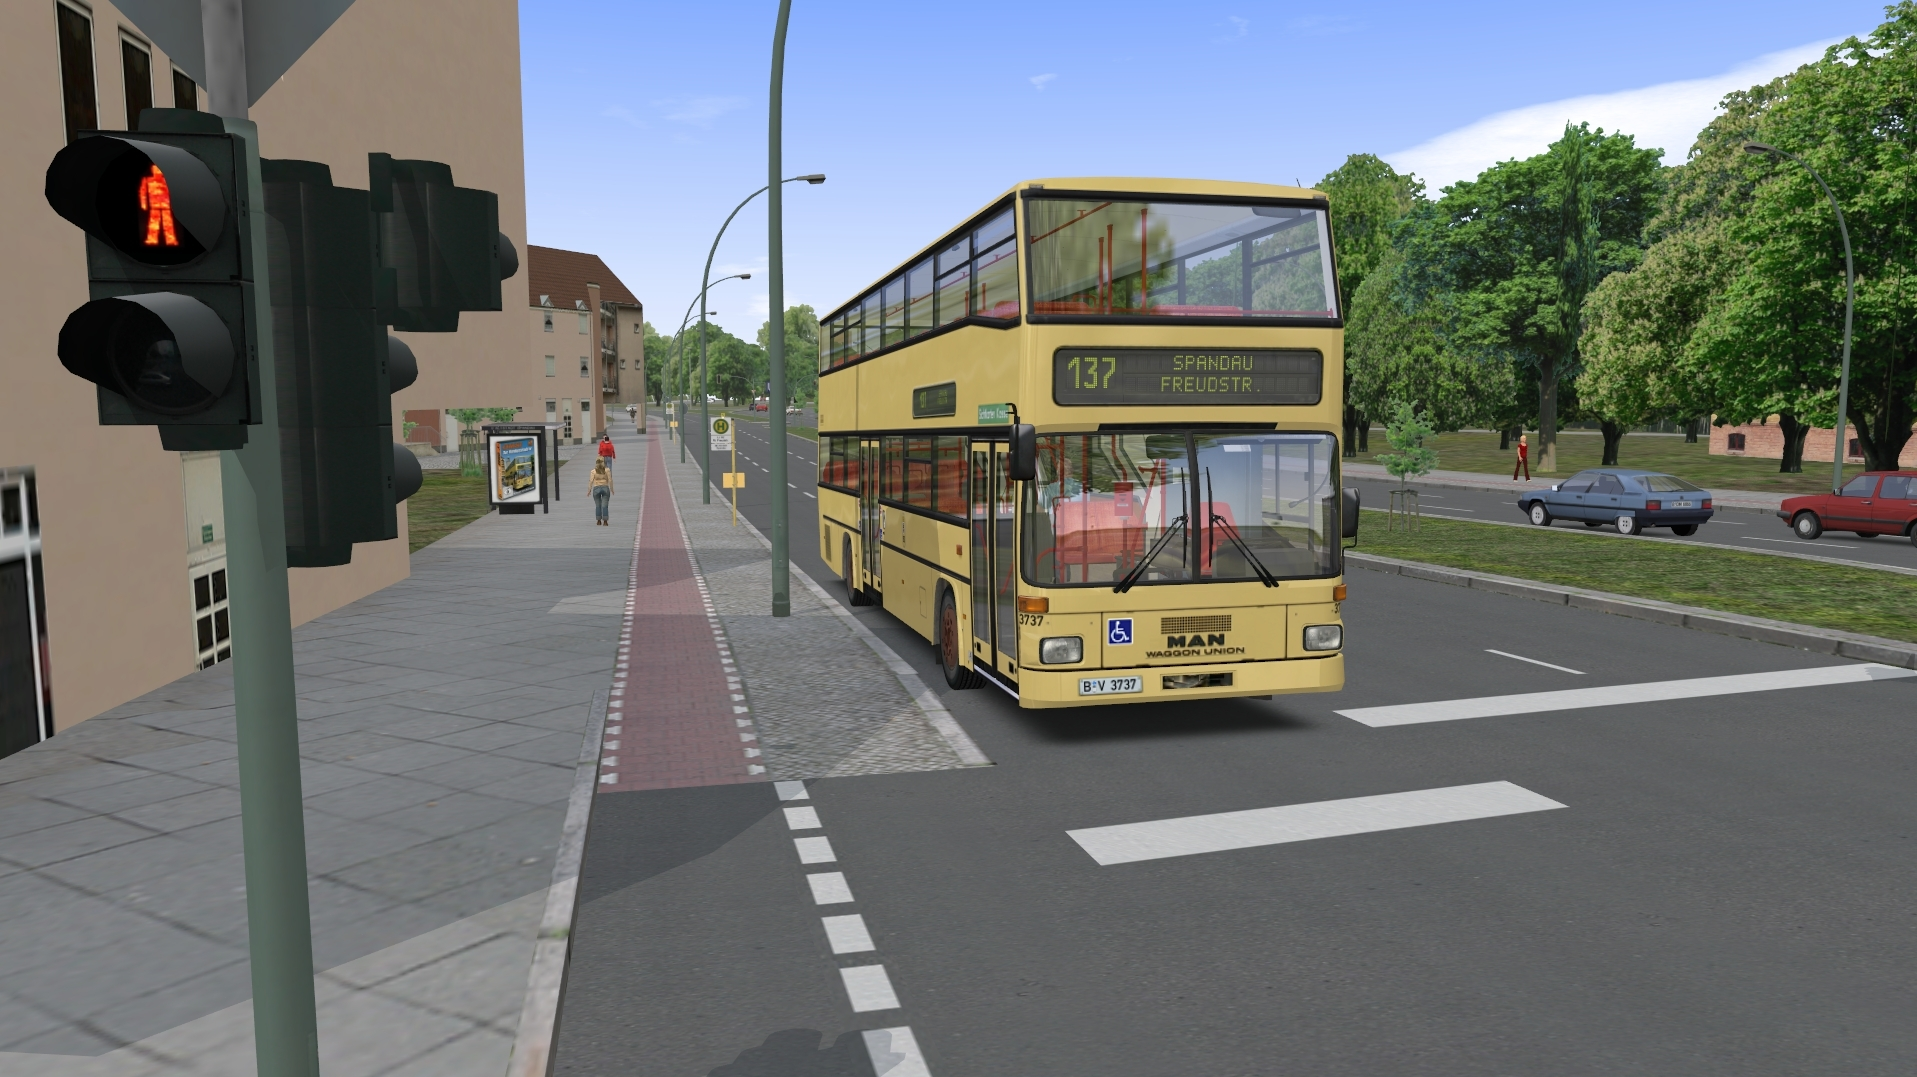 omsi bus simulator 2 02 simulator games mods download. Black Bedroom Furniture Sets. Home Design Ideas